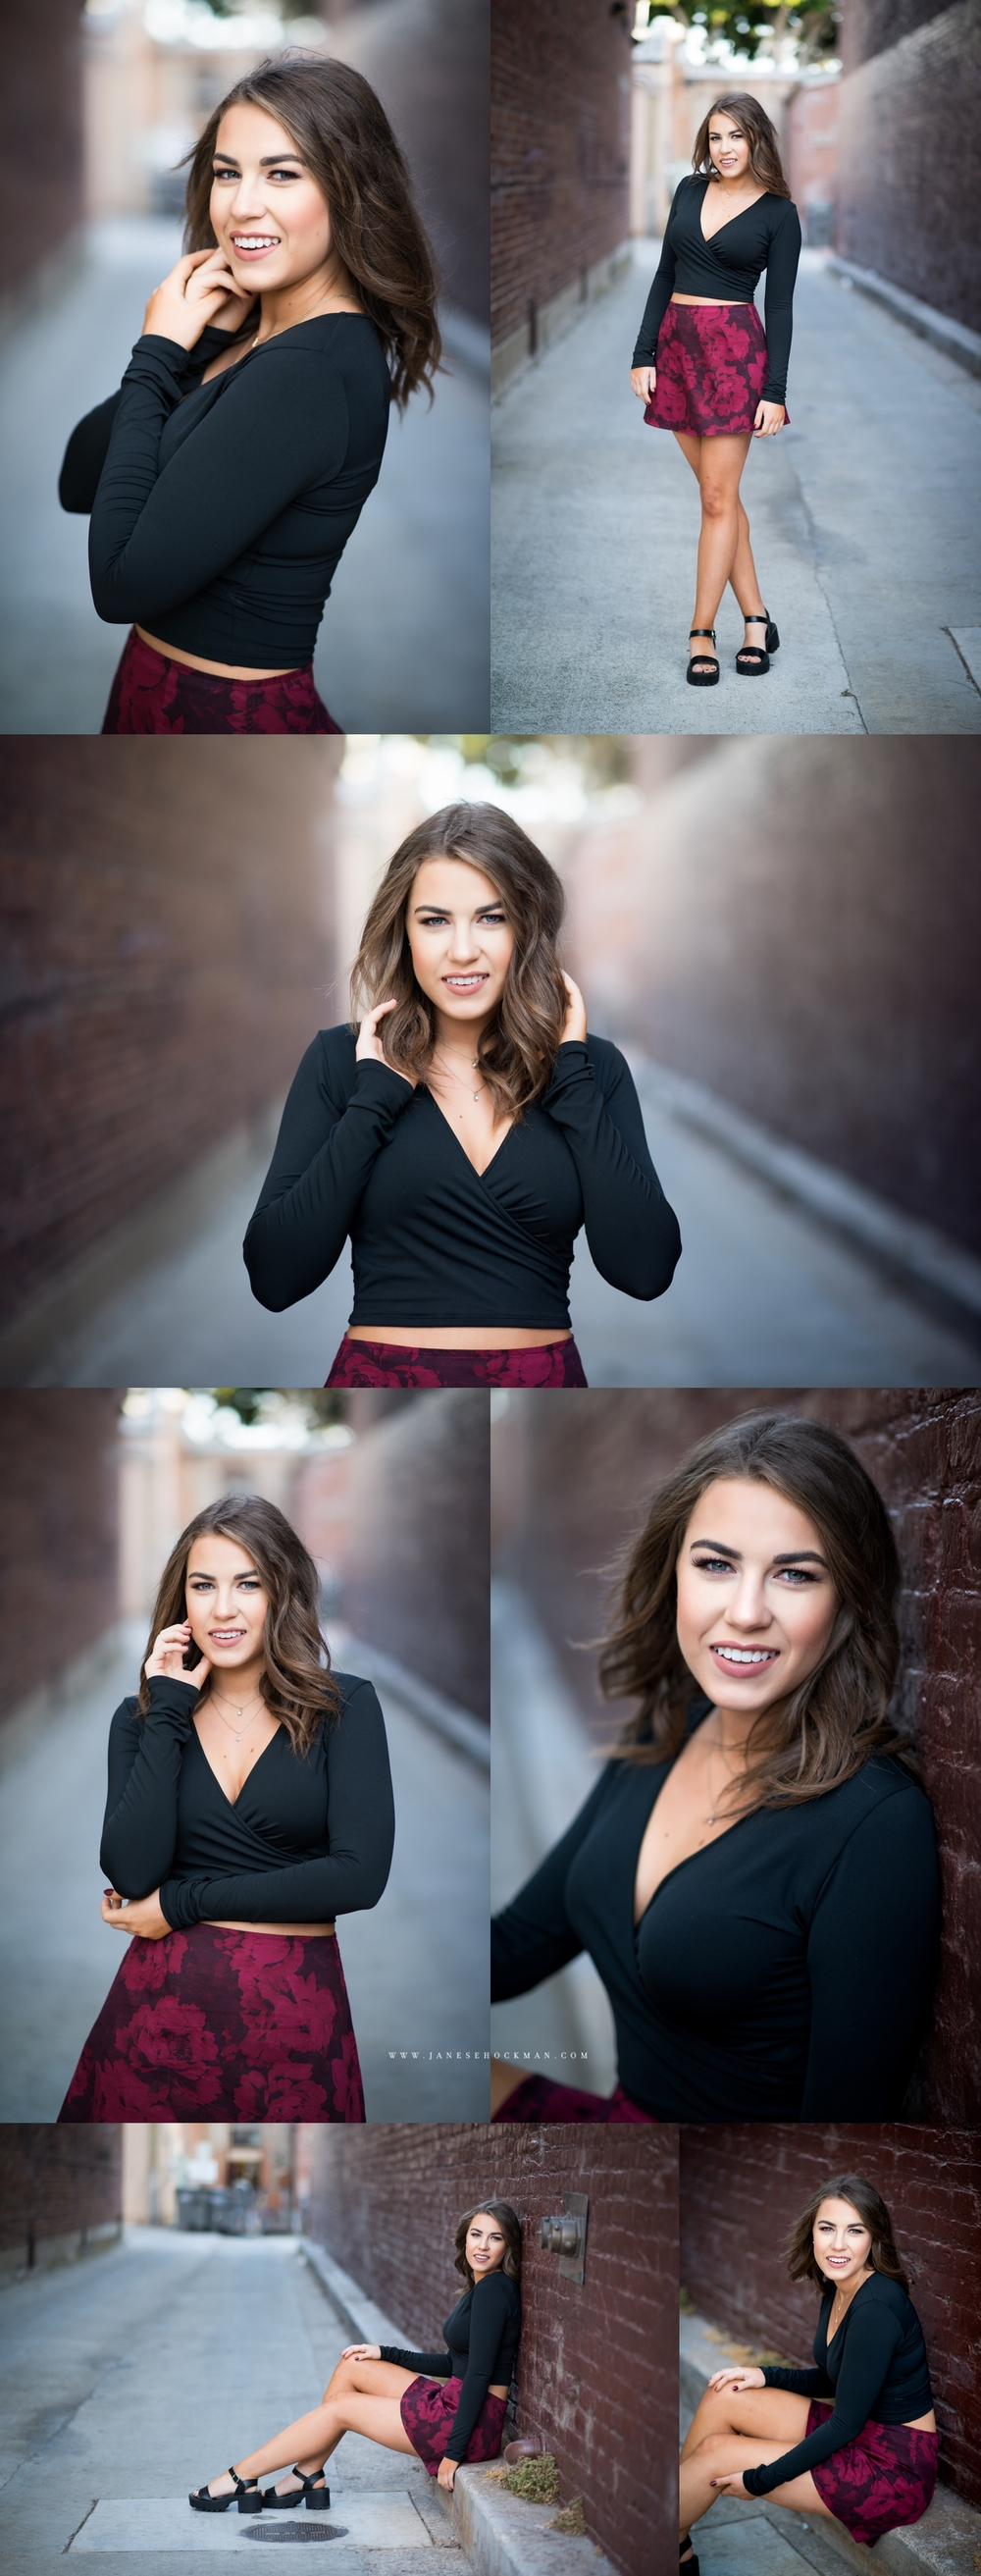 Holly | Janese Hockman Photography San Luis Obispo High School senior portraits California 3.jpg